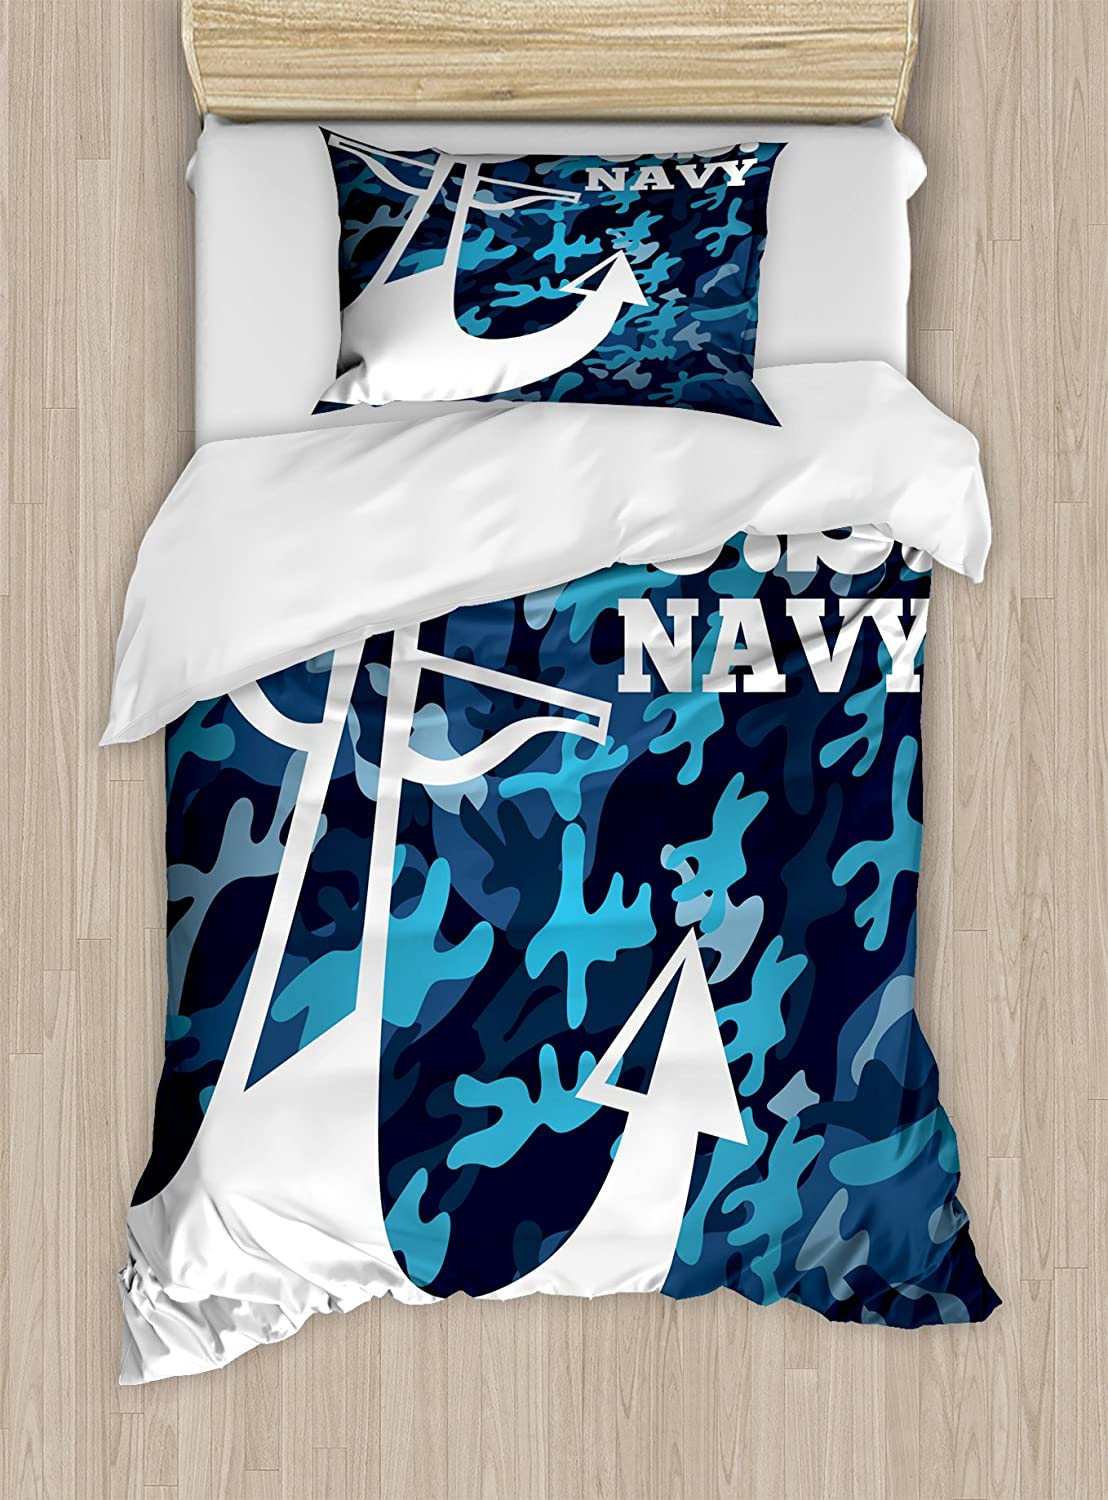 Lunarable US Navy Duvet Cover Set Twin Size, Uniform Design with Camouflage Style bluee Toned Background and Anchor, Decorative 2 Piece Bedding Set with 1 Pillow Sham, Dark bluee White bluee